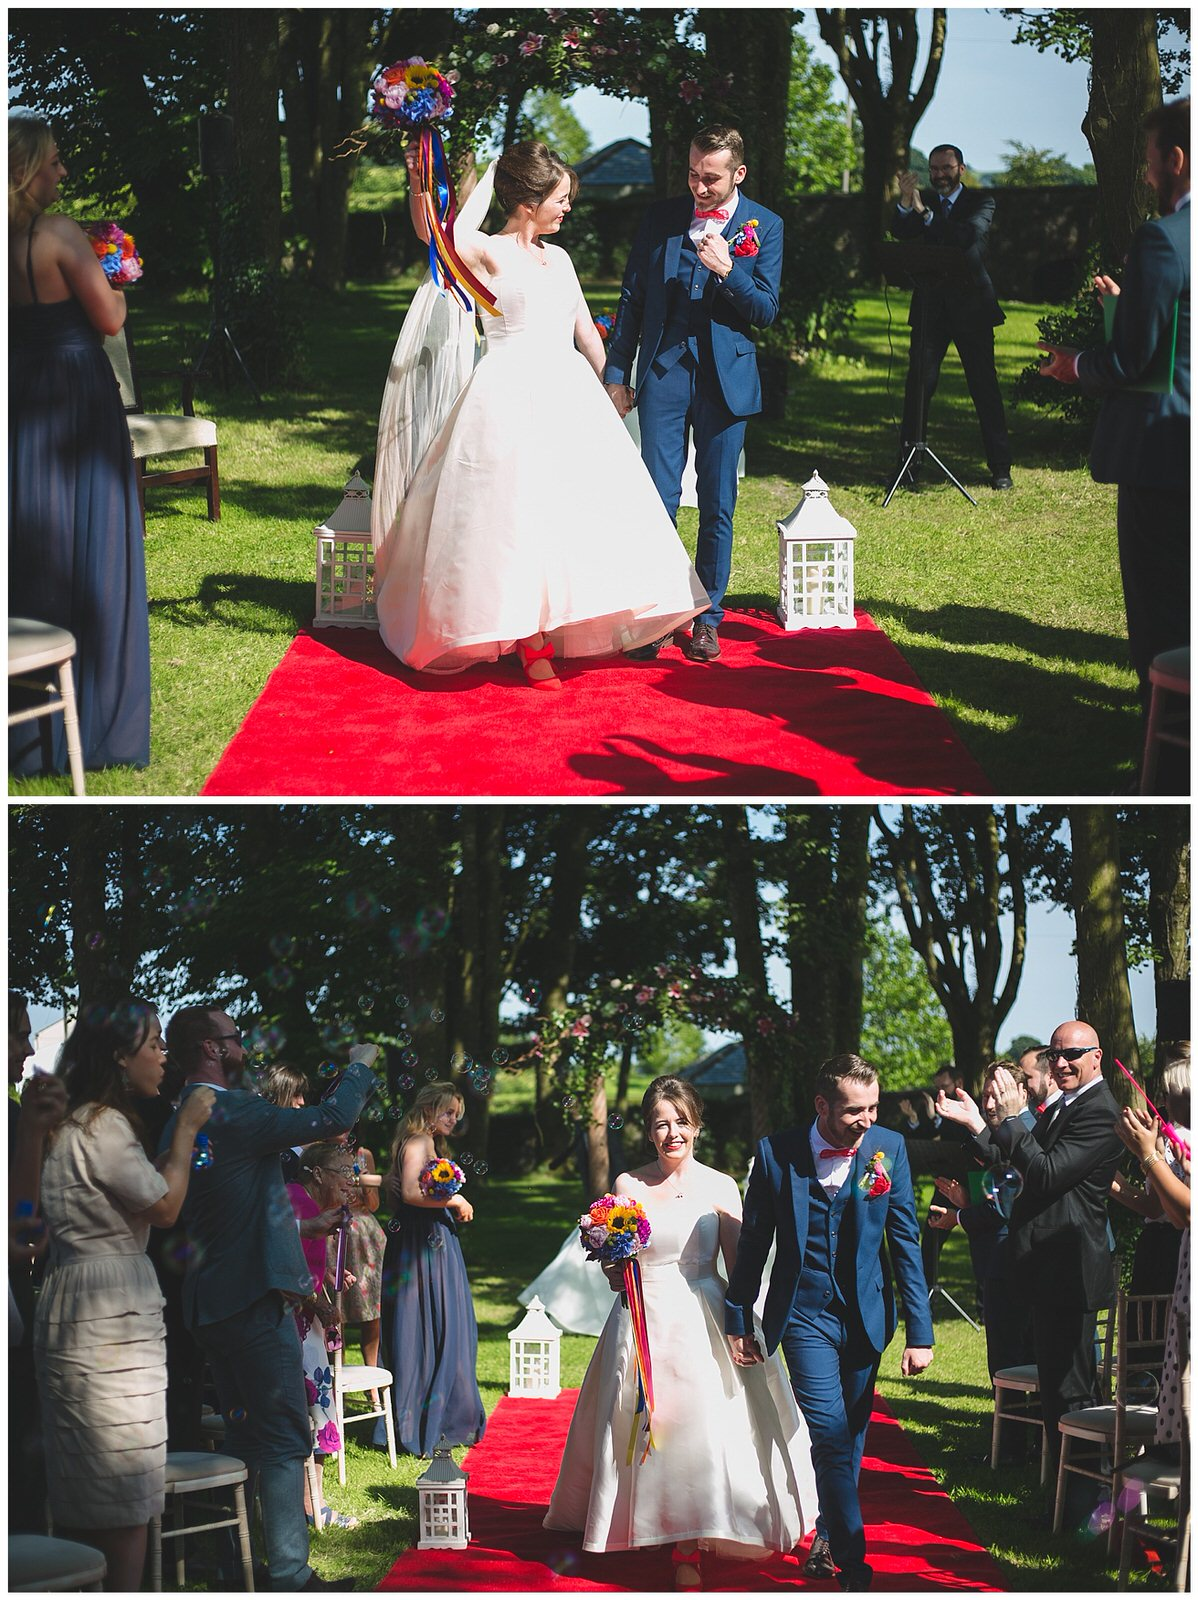 Newly marries couple cheer as they walk down the aisle